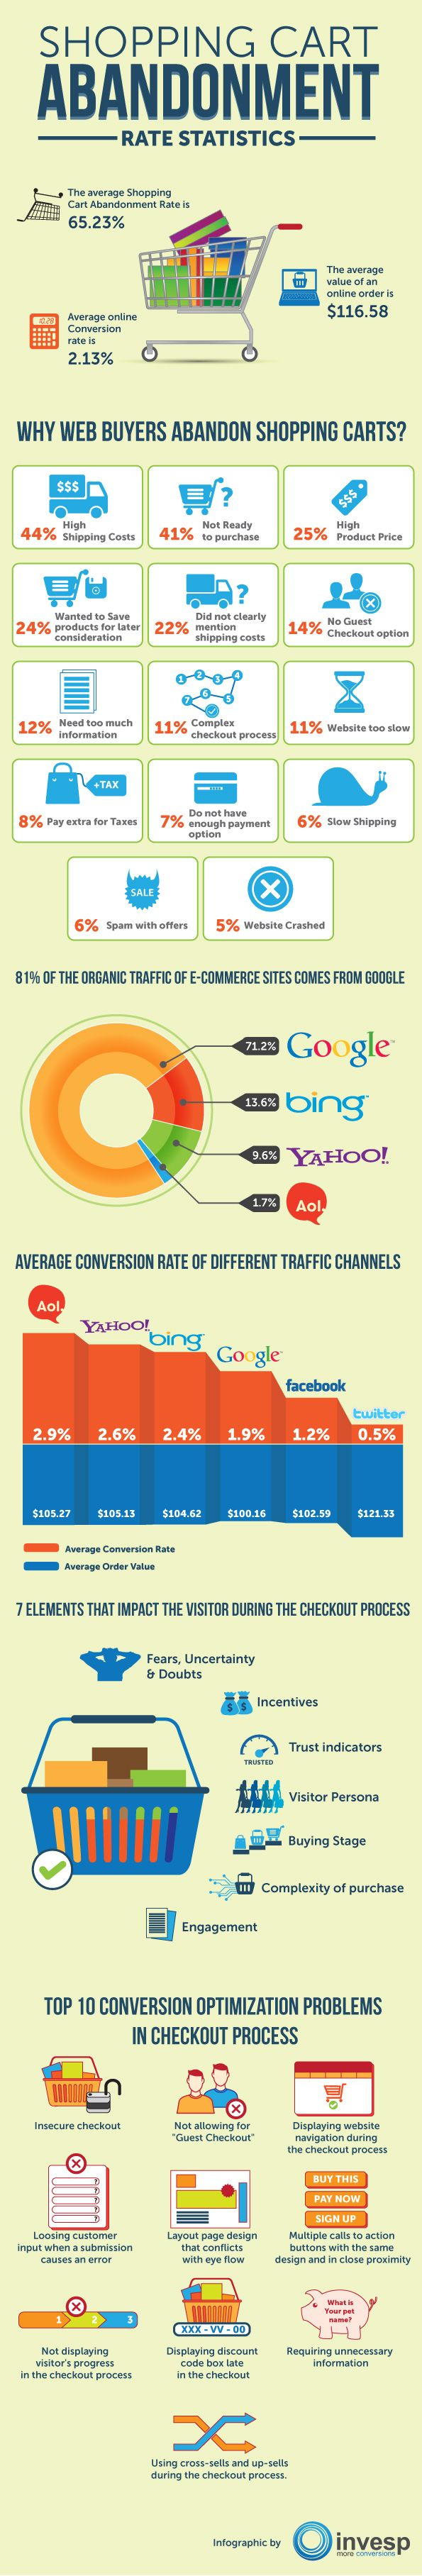 Online shopping cart abandonment [infographic] - Holy Kaw!